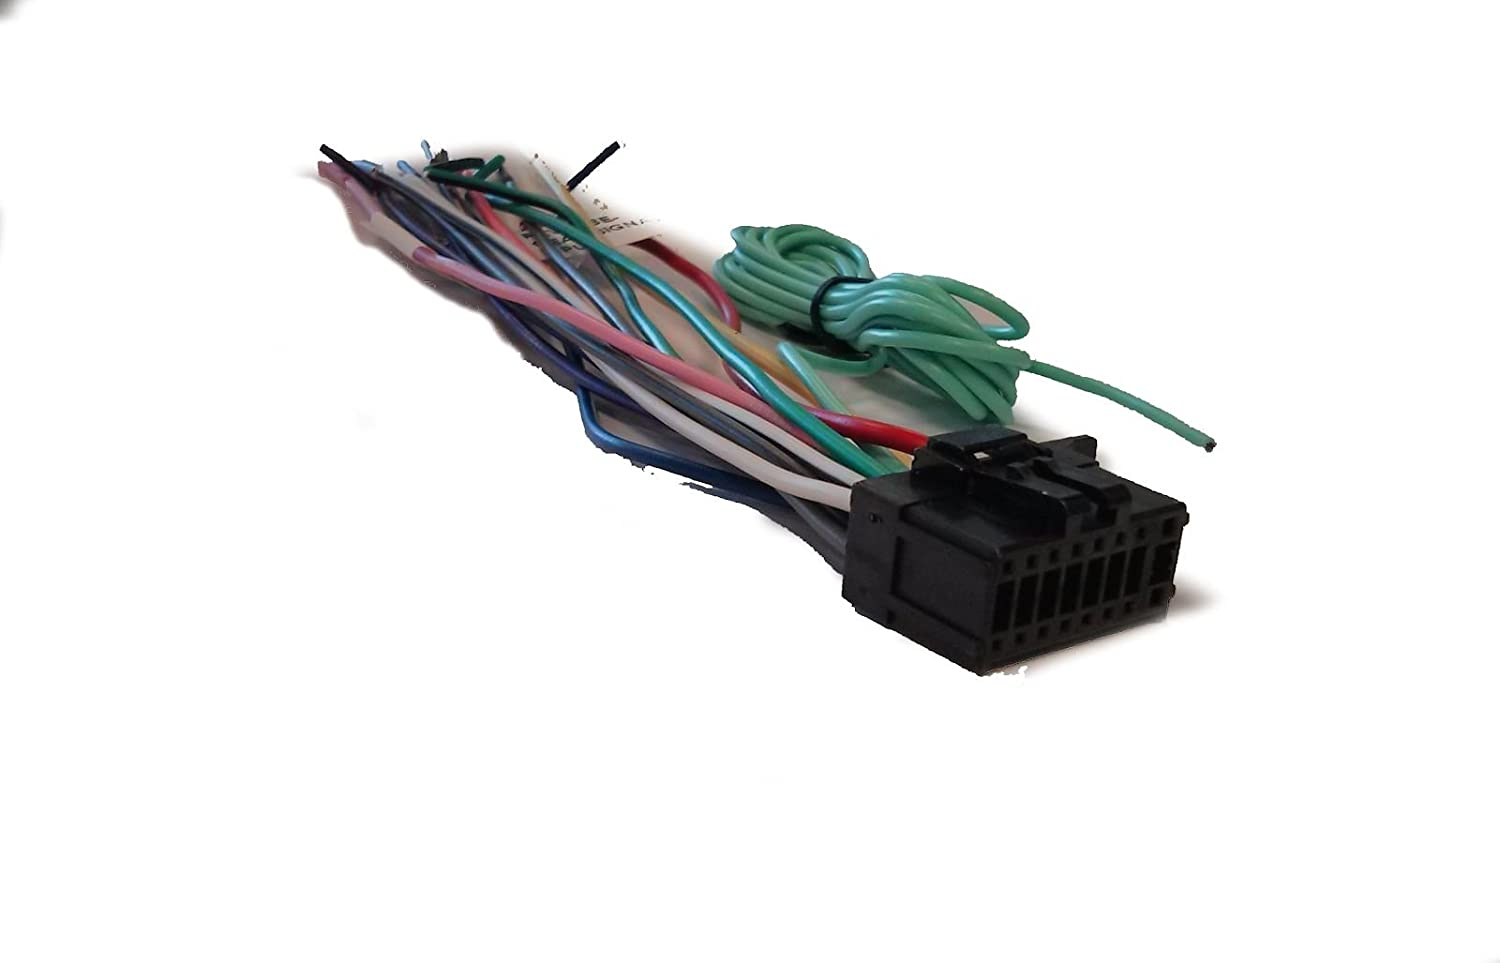 61s%2B2yUu BL._SL1500_ amazon com pioneer wire harness for sph da210 sph da100 sph da200 pioneer avh-4100nex wiring harness at bakdesigns.co